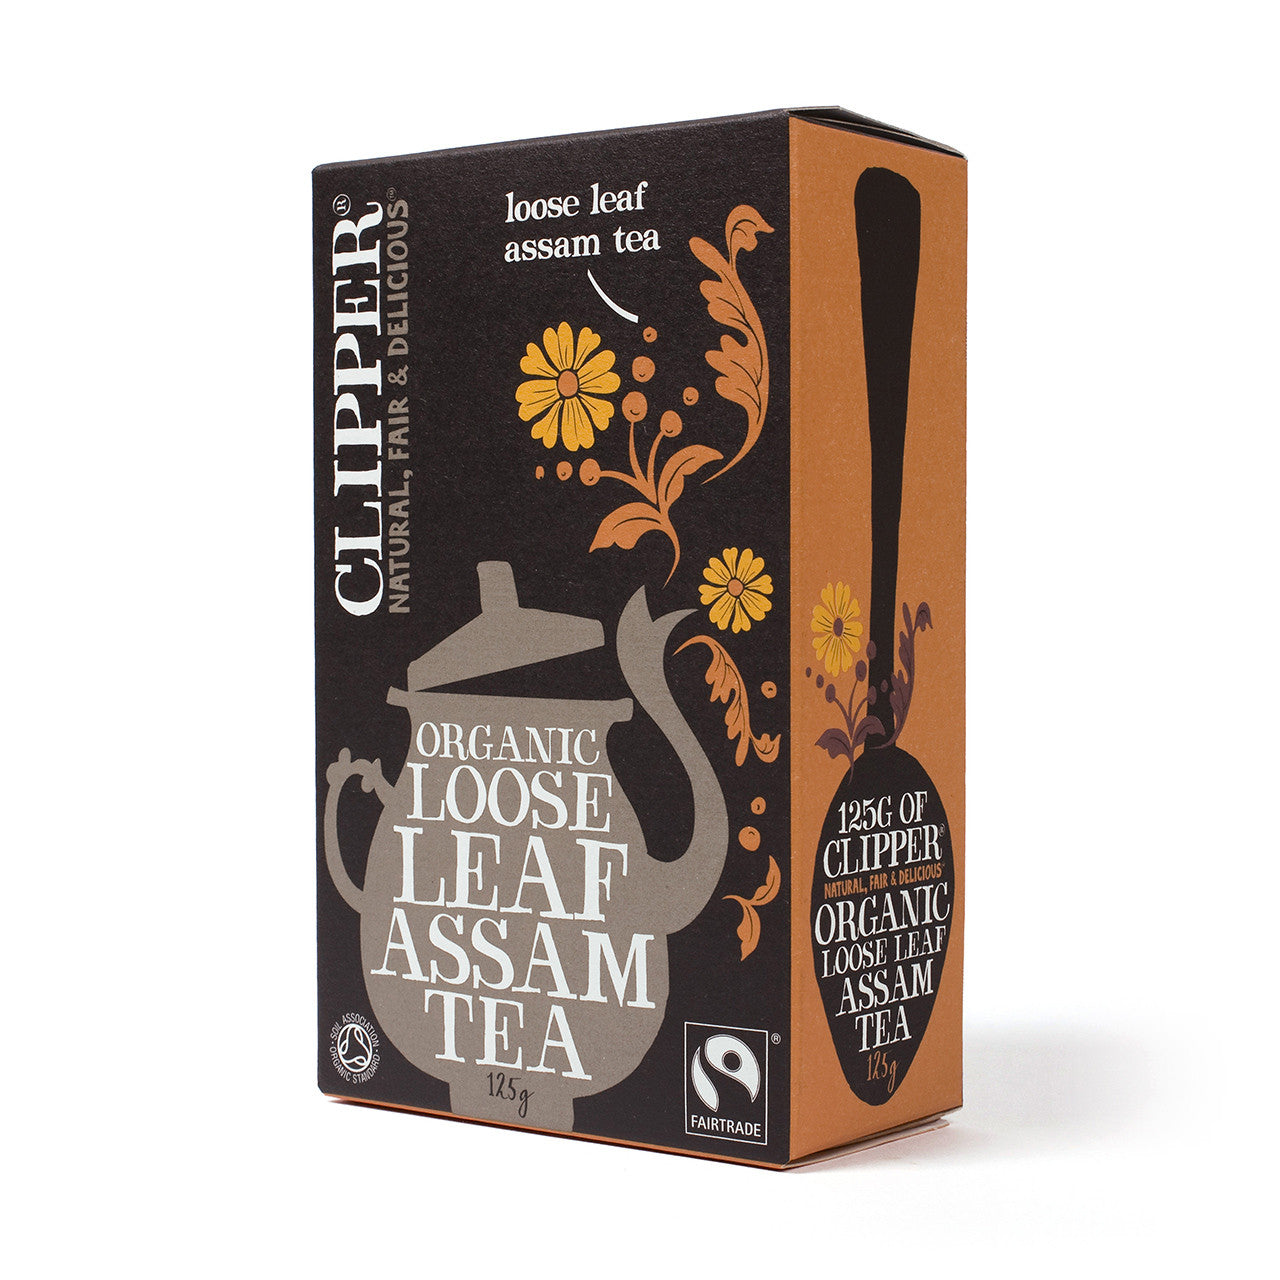 Fairtrade Organic Assam Tea loose leaf 125g